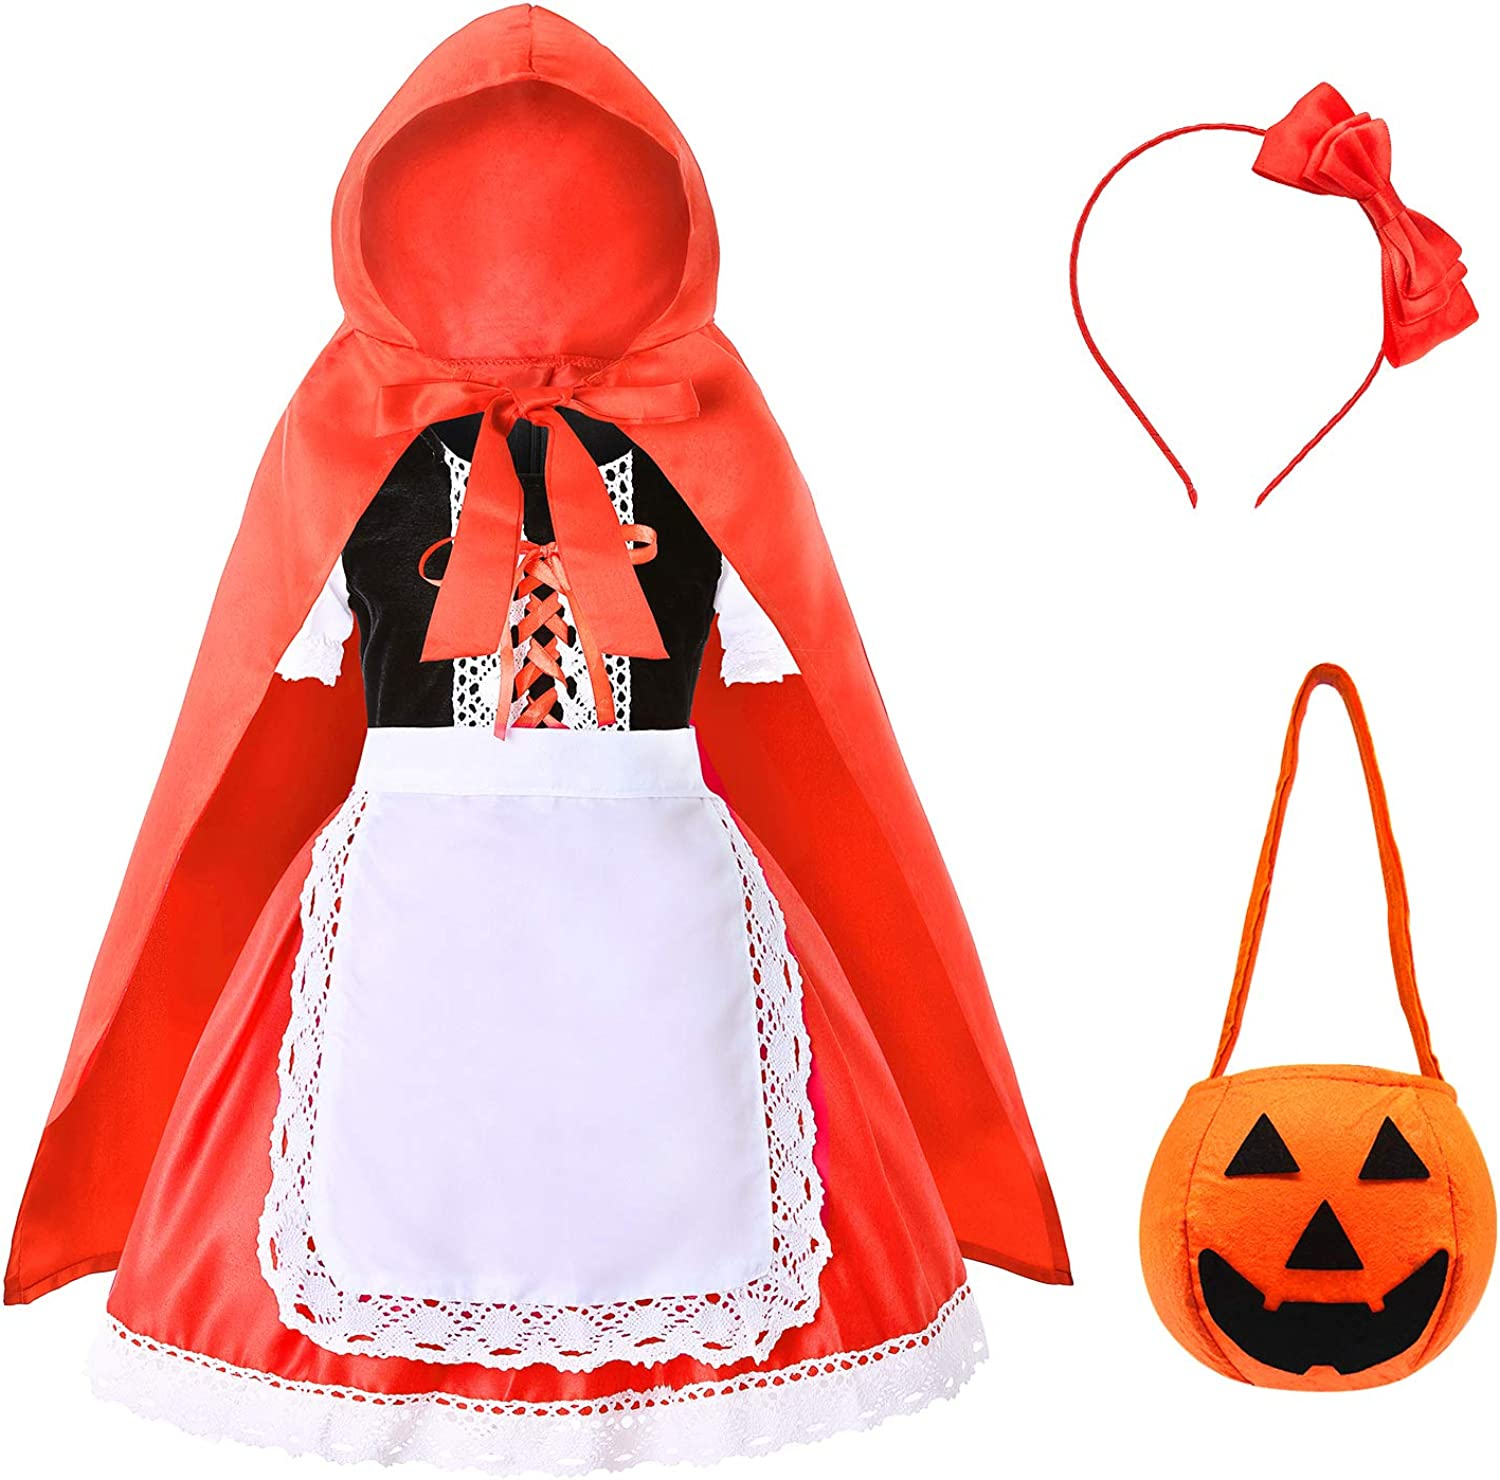 Heay Little Red Riding Hood Costume for Girls Kids Halloween Cosplay Costume Age 3-12 Years